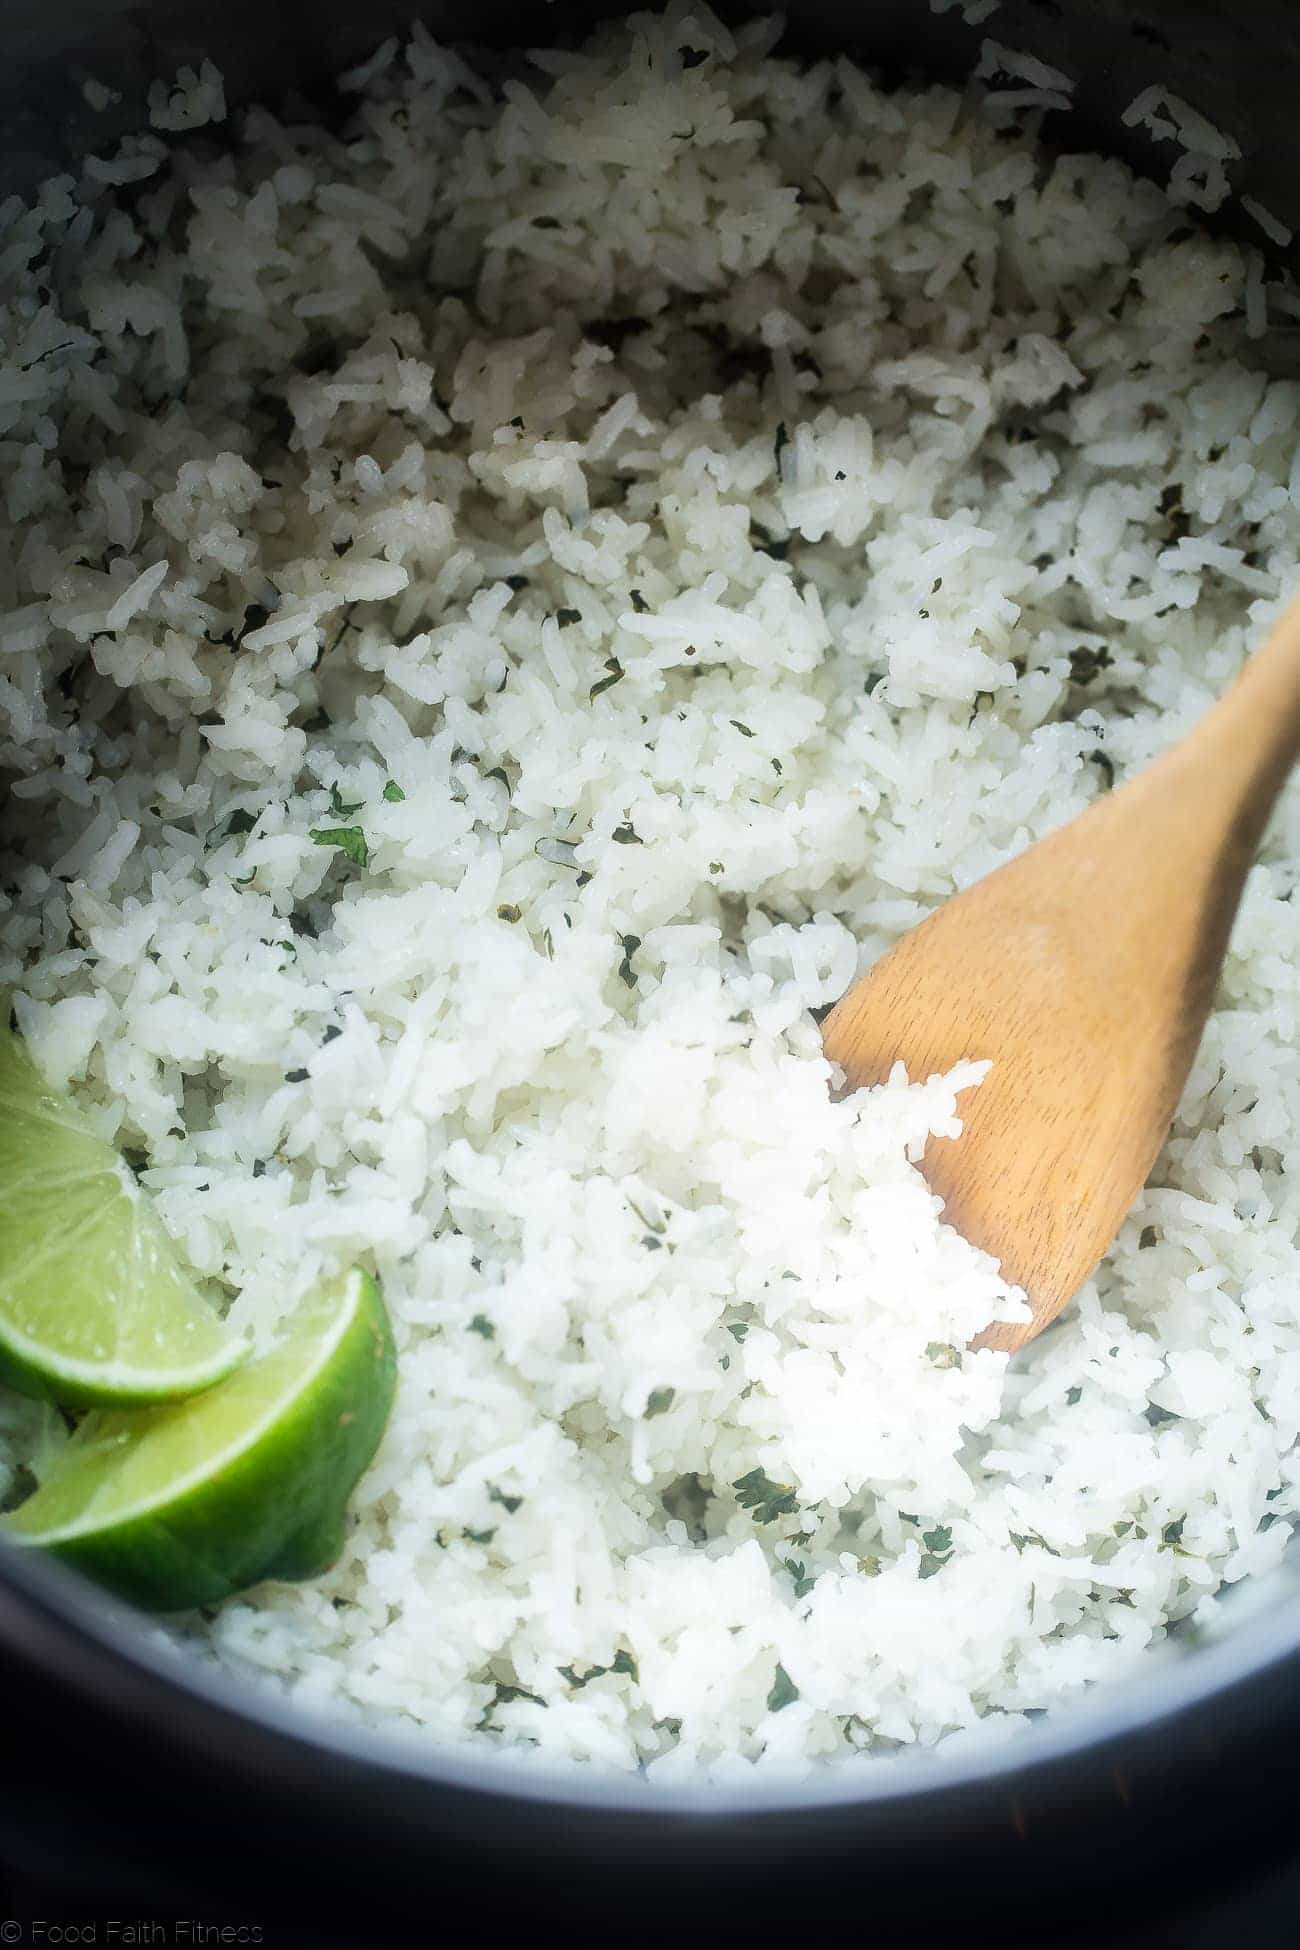 Instant Pot Cilantro Lime Rice - This super easy rice tastes like Chipotle's, is only 3 ingredients and is ready in 12 minutes - the perfect healthy side dish! | Foodfaithfitness.com | @FoodFaithFit